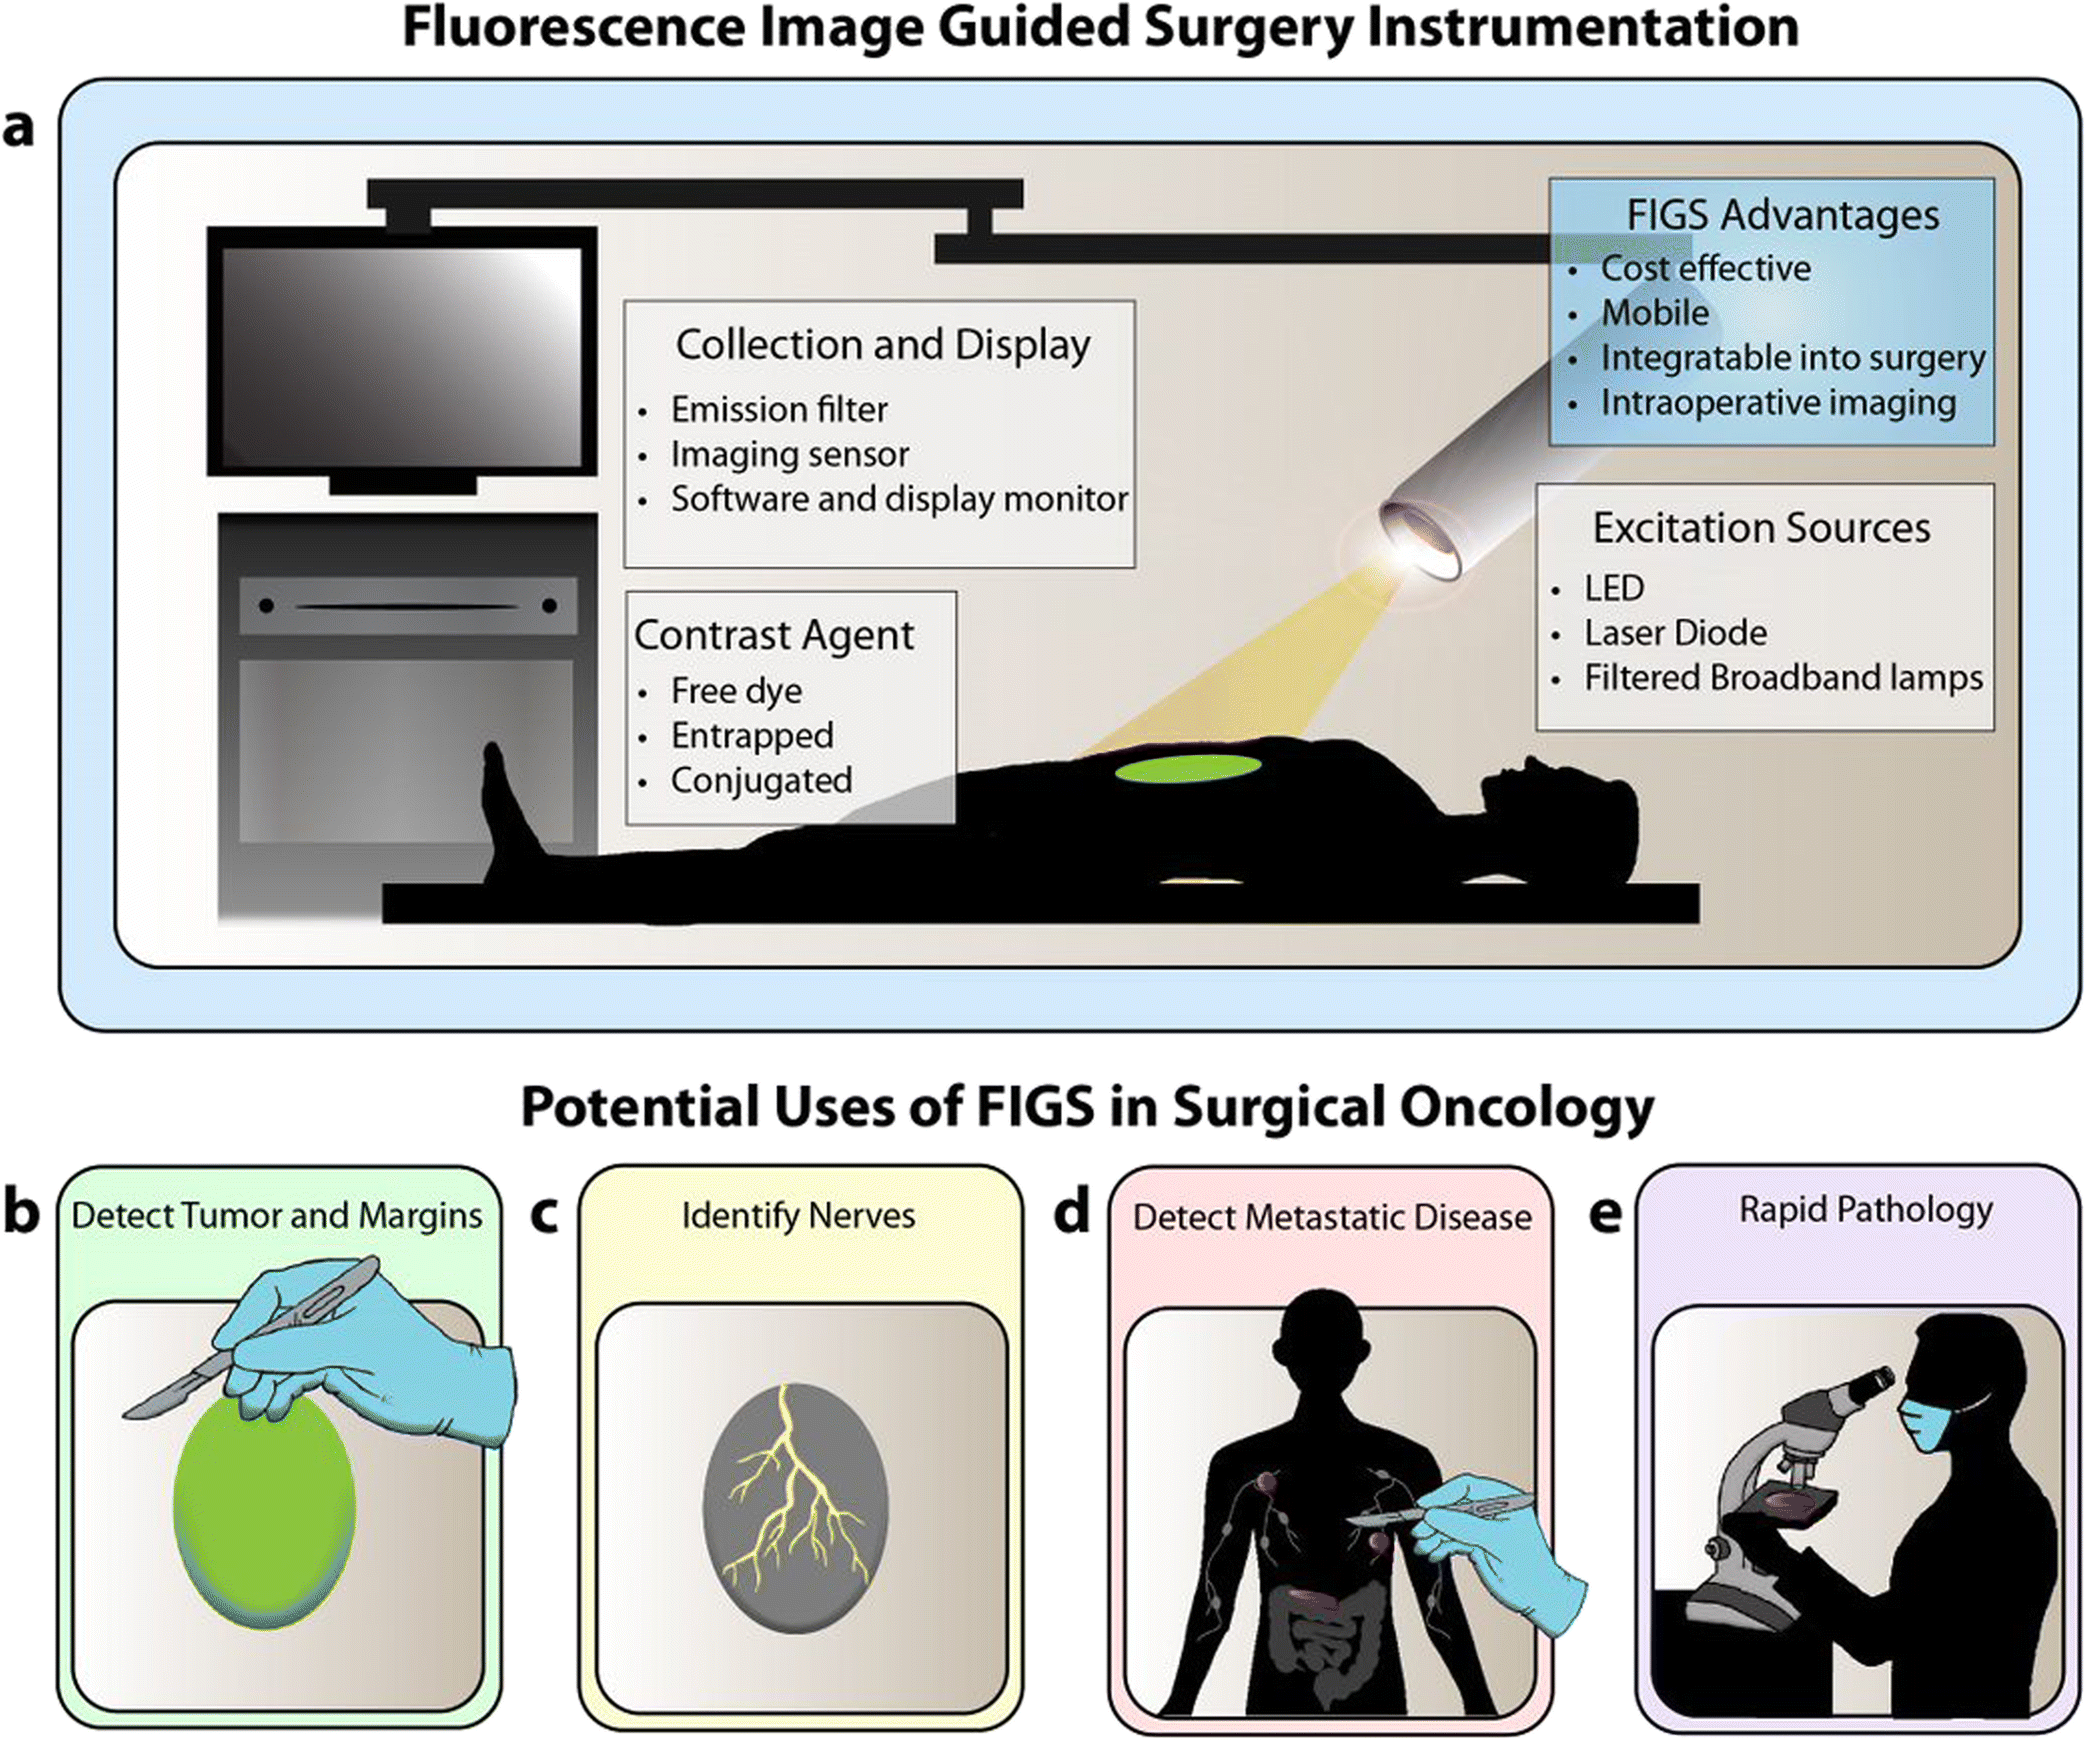 Fluorescence Guidance in Surgical Oncology: Challenges